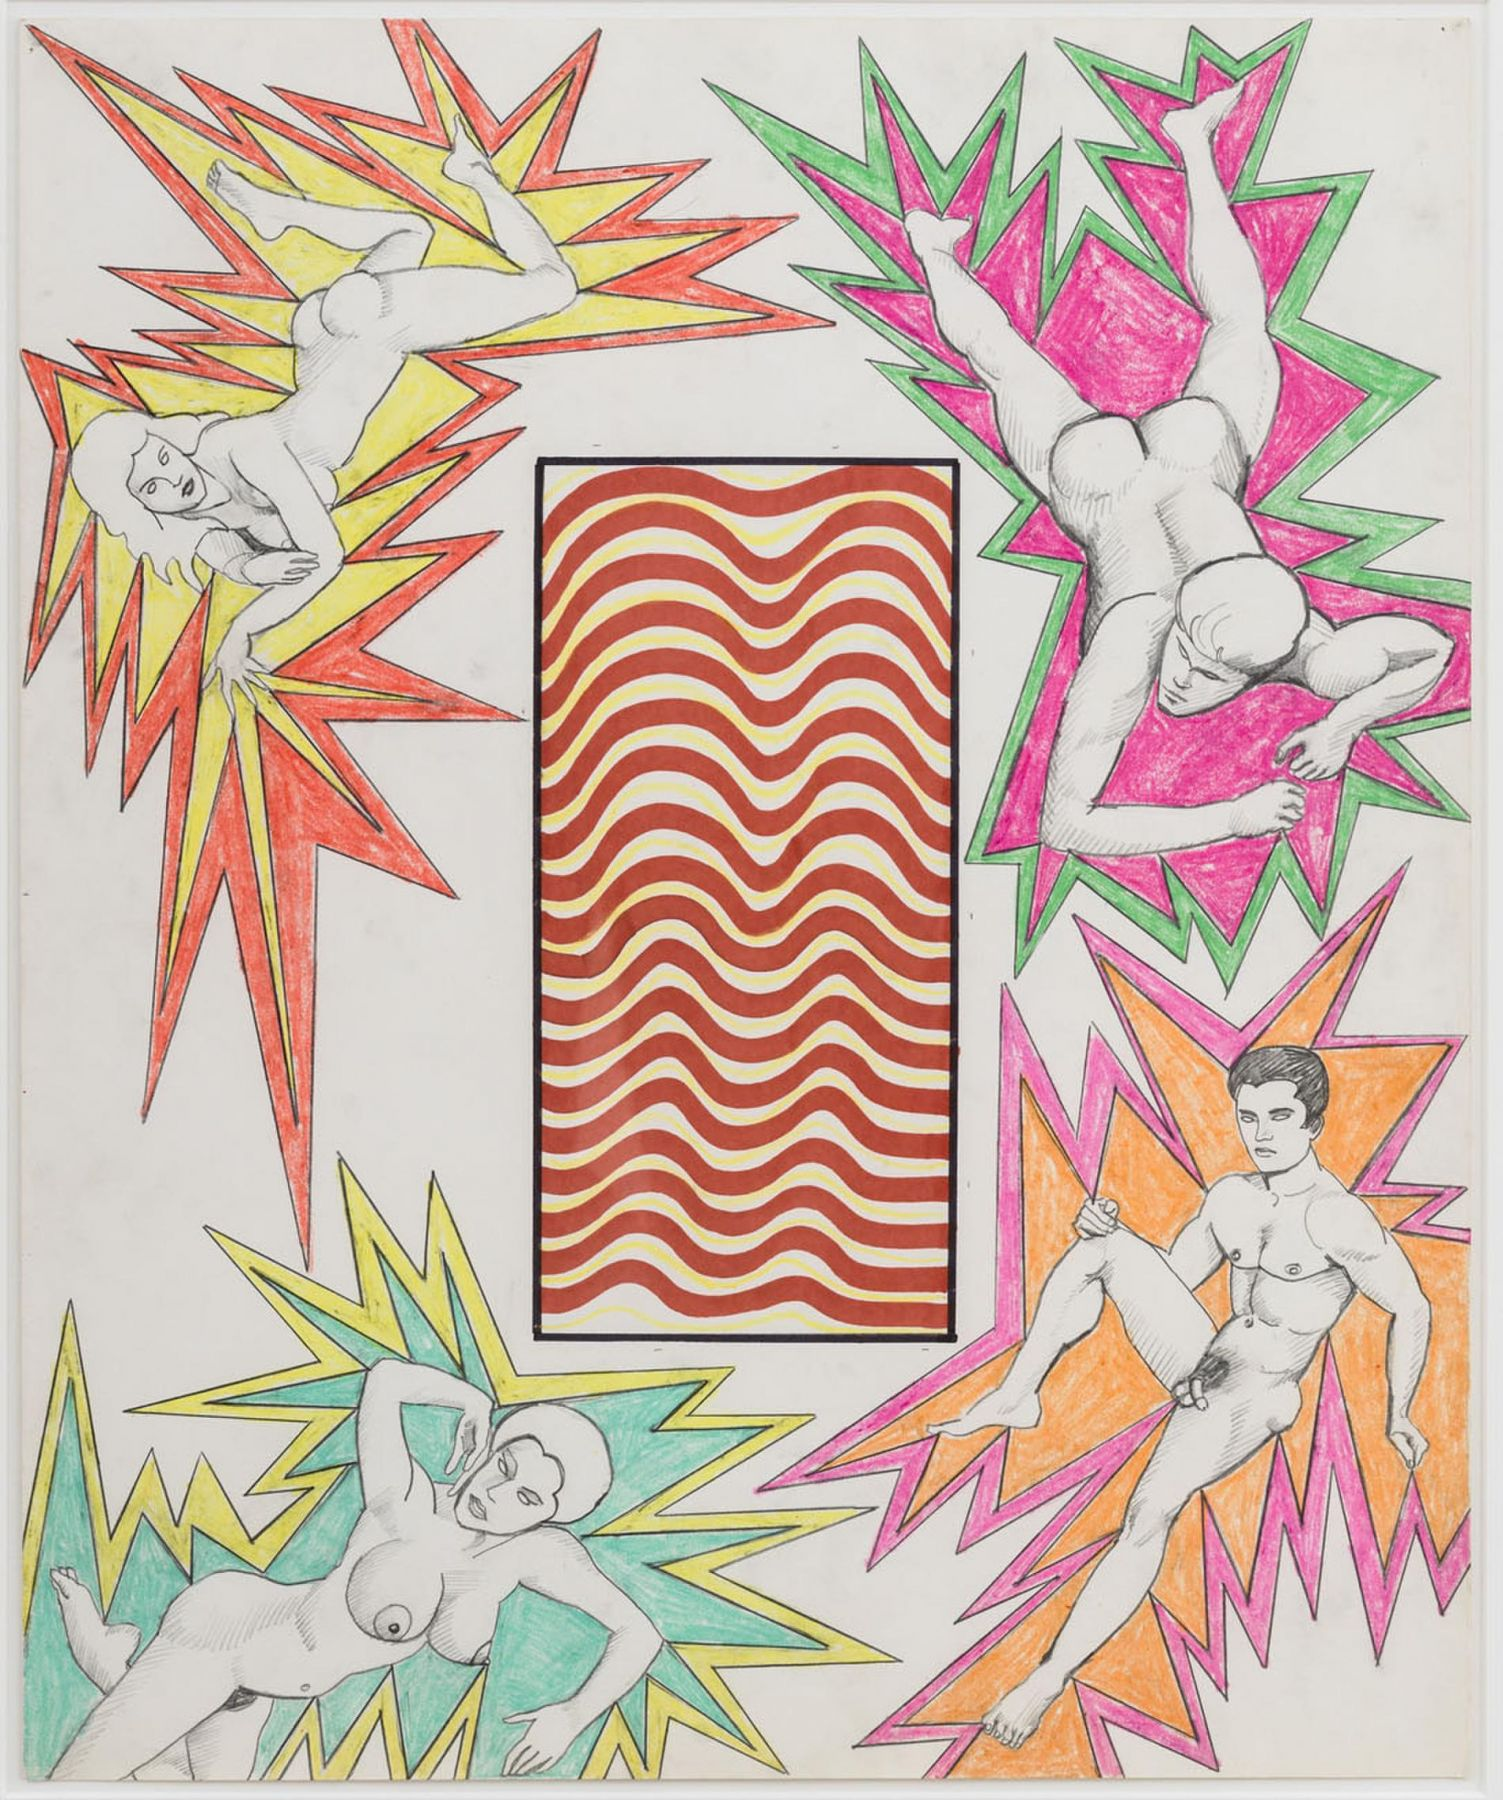 ROBERT SMITHSON Untitled [Red and yellow waves]